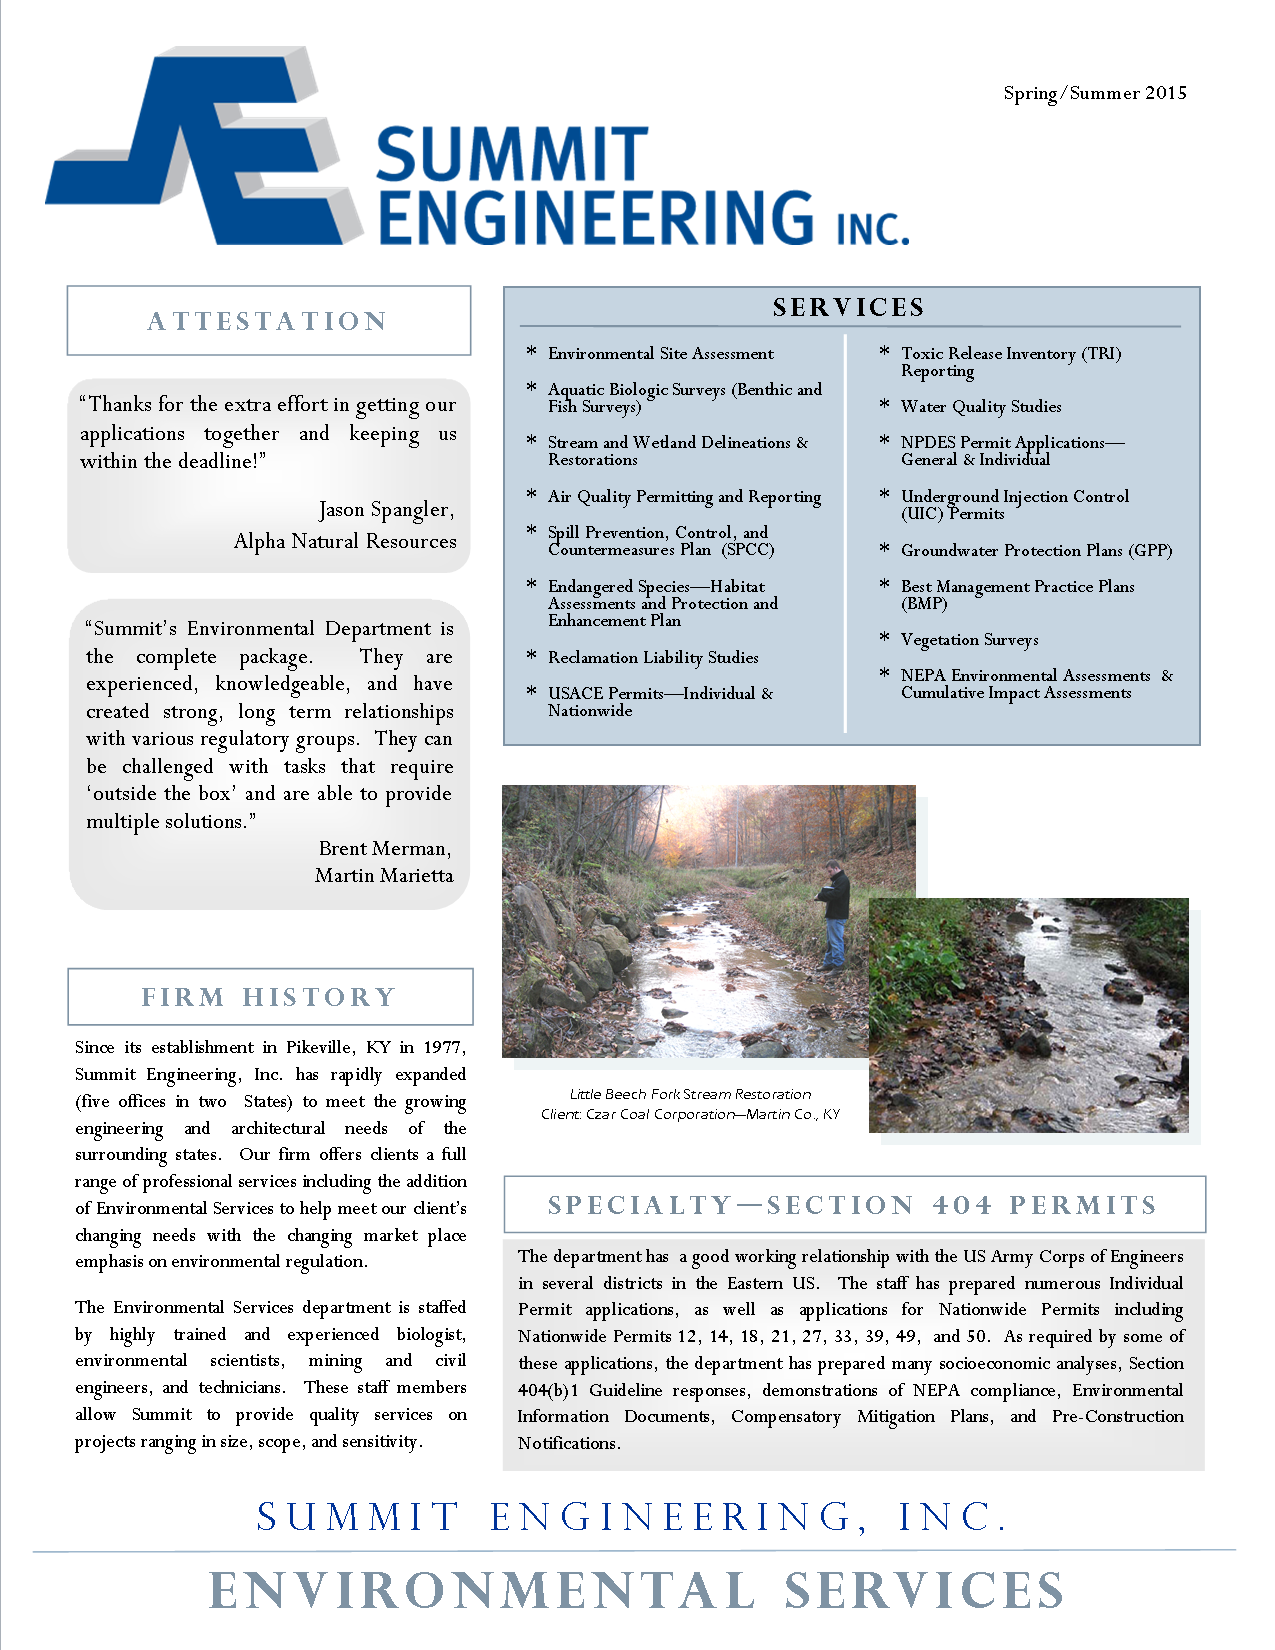 Environmental Engineering Services Brochure